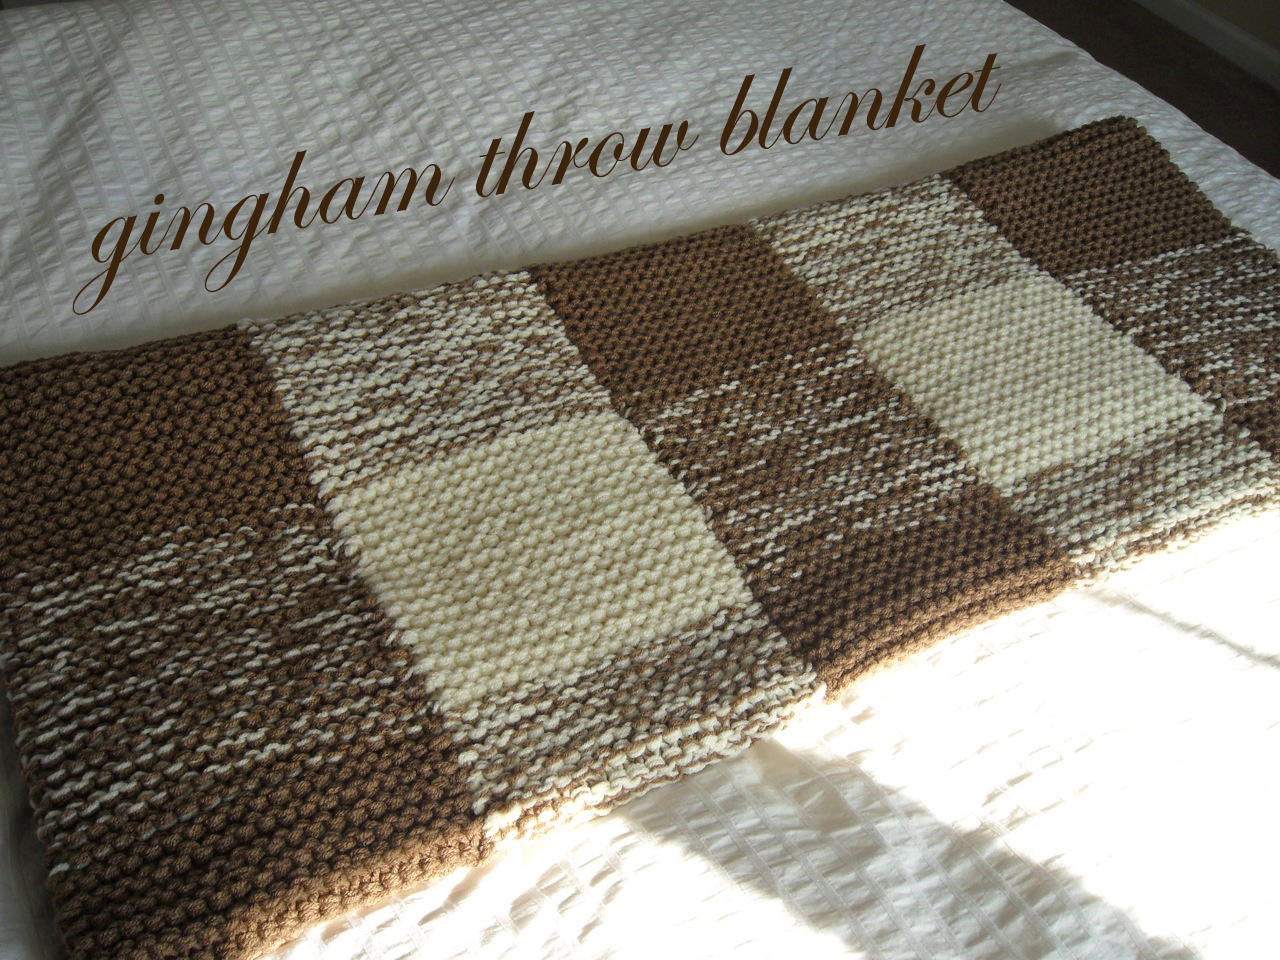 Gingham Throw Blanket